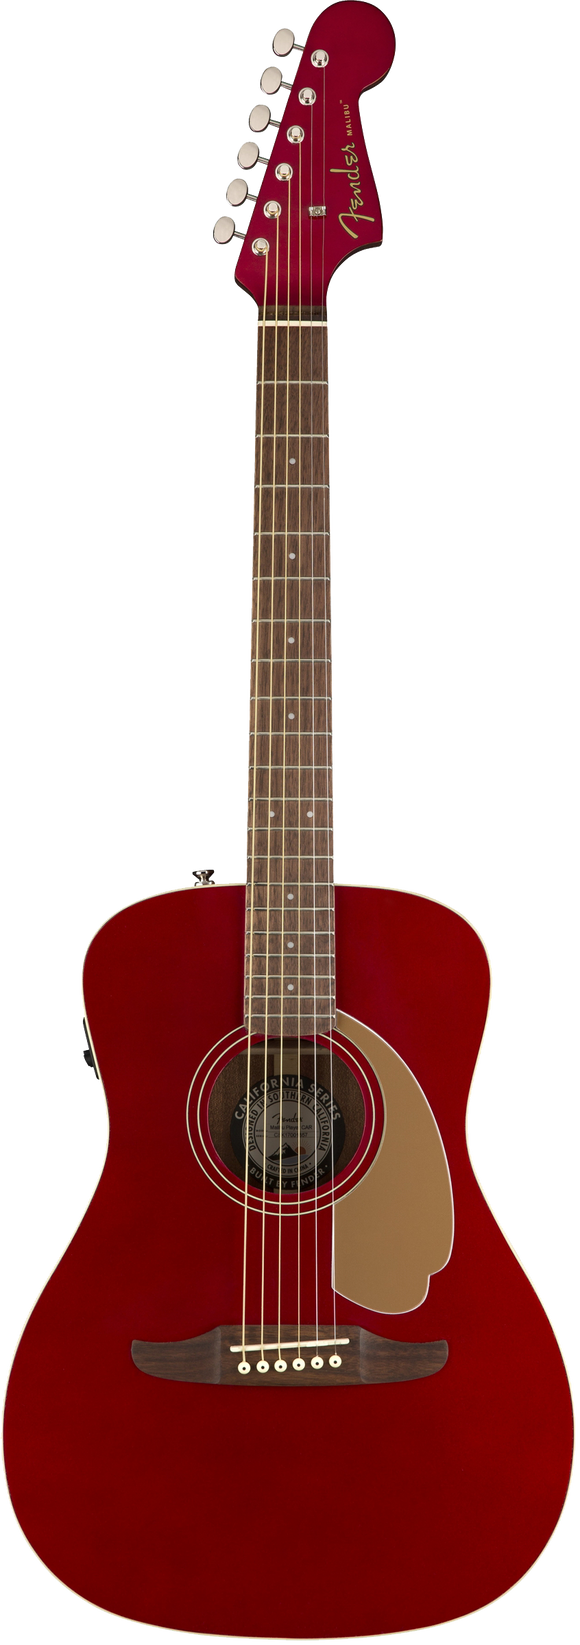 Fender Malibu Player Acoustic / Electric Guitar - Candy Apple Red